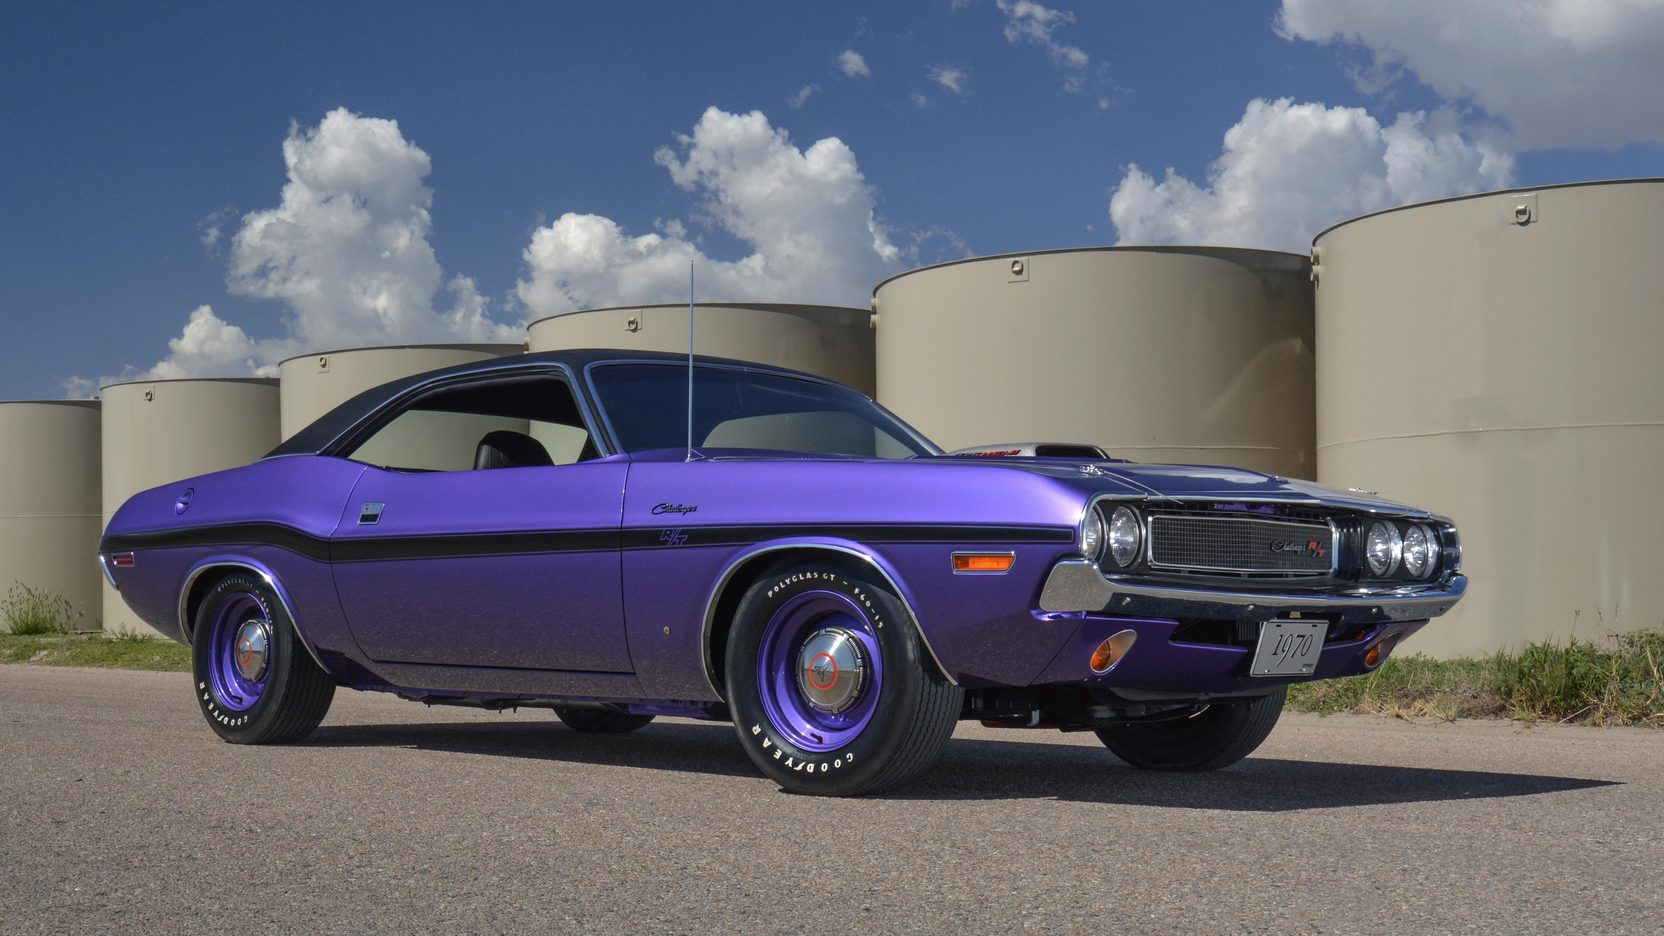 1970 Dodge Challenger R/T Purple 3/4 front